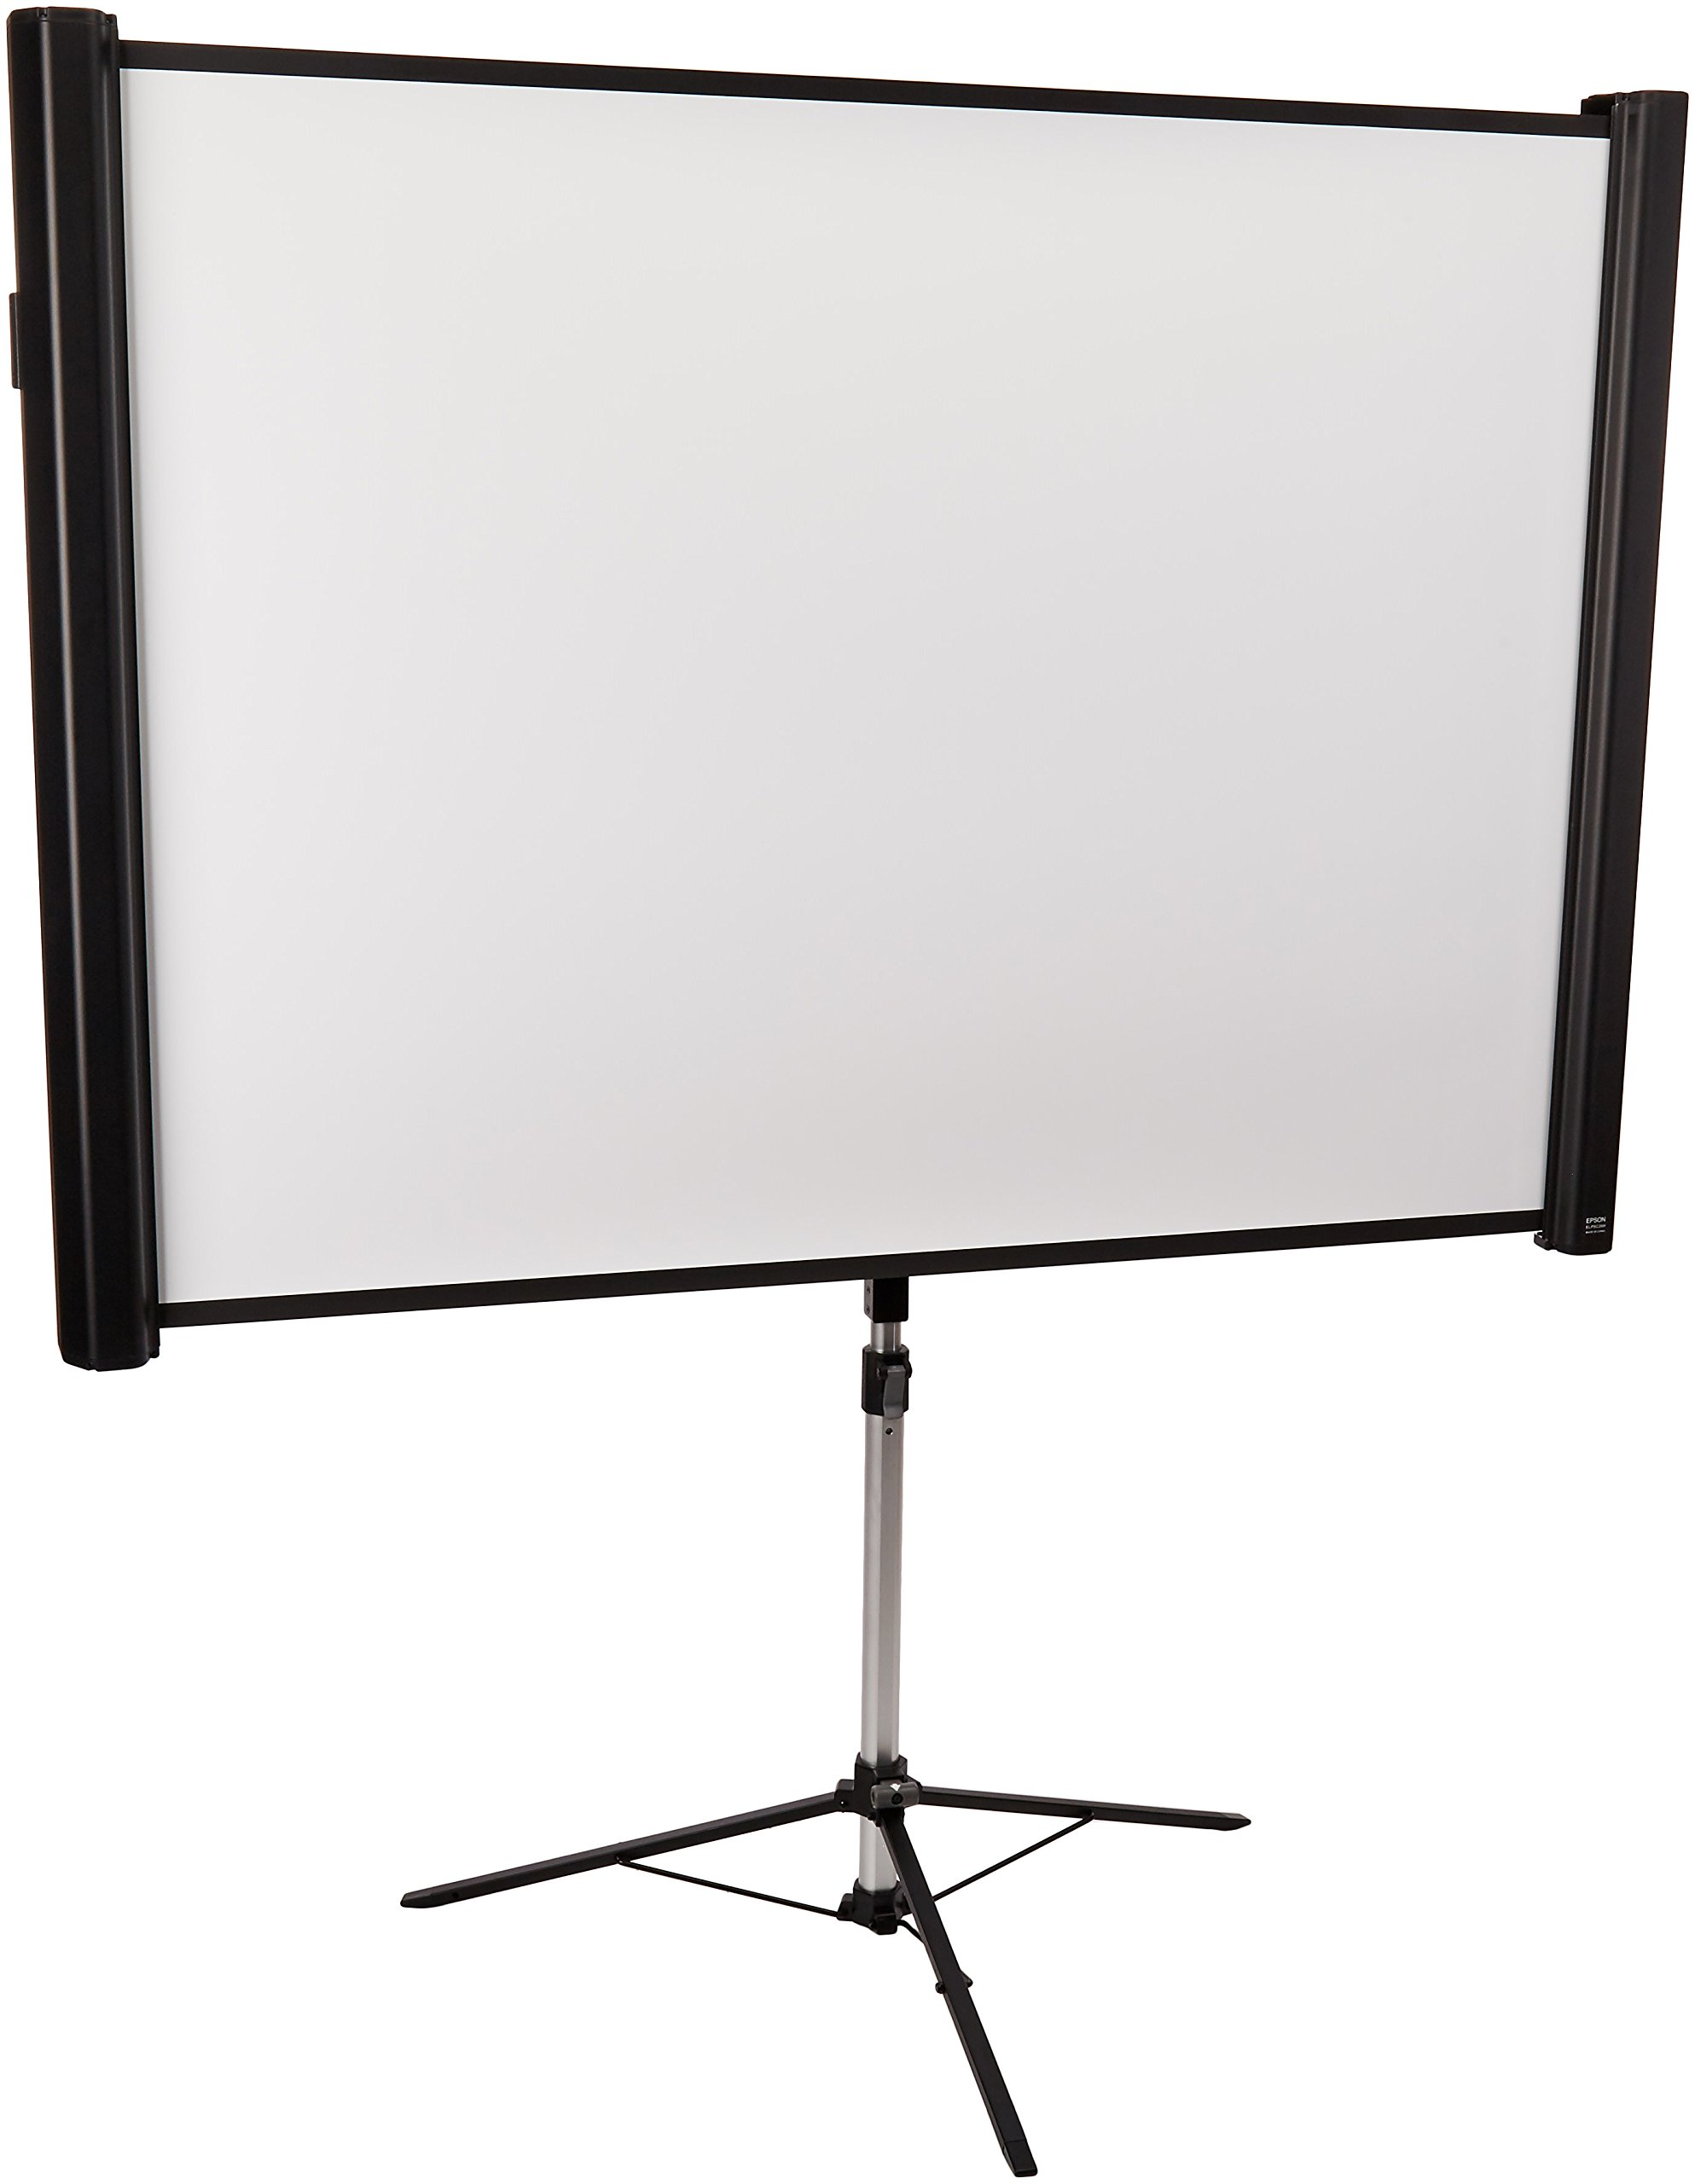 Epson ES3000 Ultra Portable Projection Screen (V12H002S3Y) by Epson